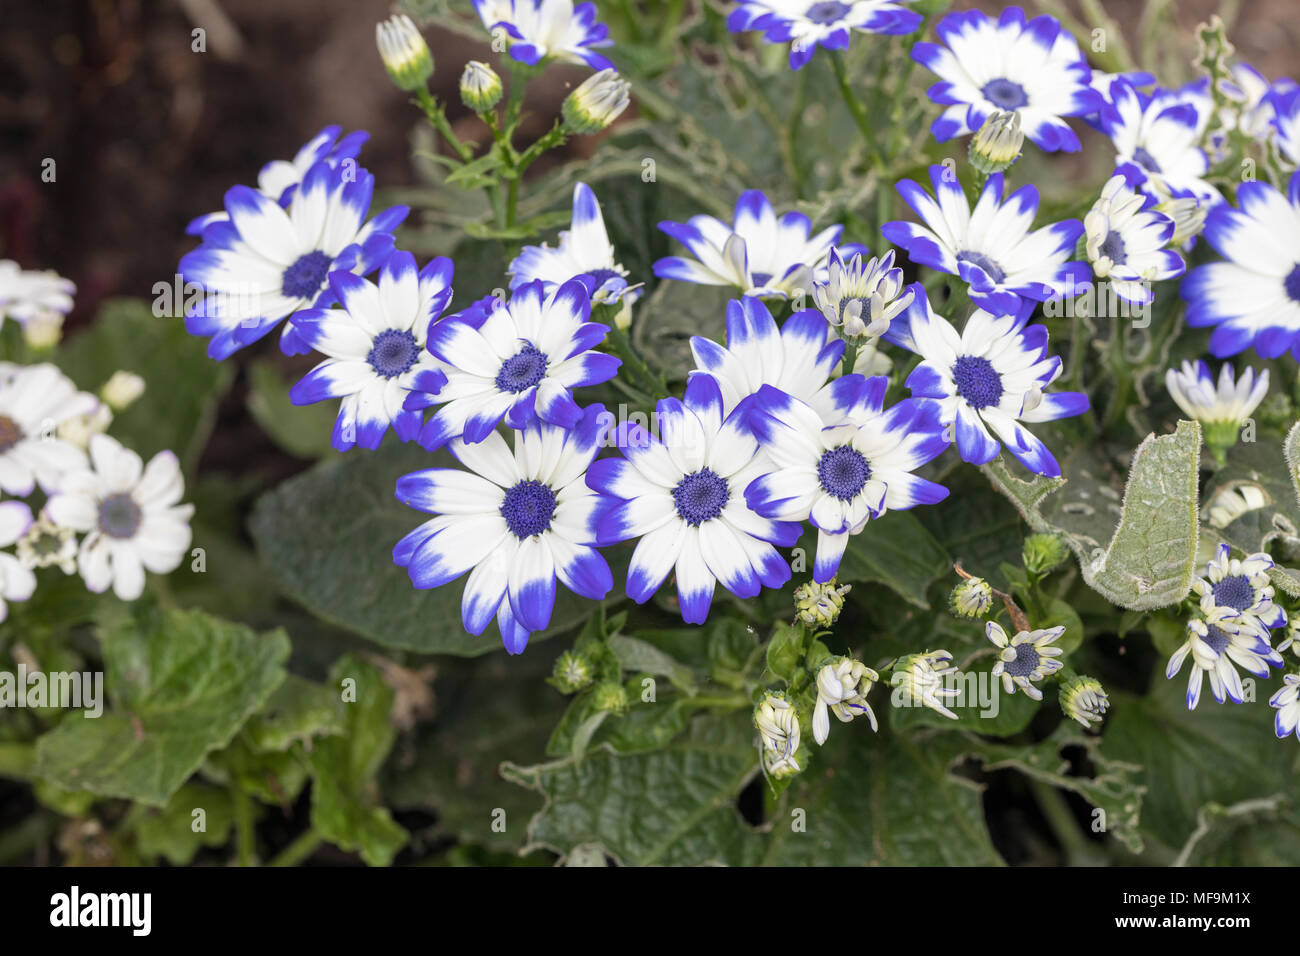 Close up of blue and white flowering Cineraria Senetti - Stock Image